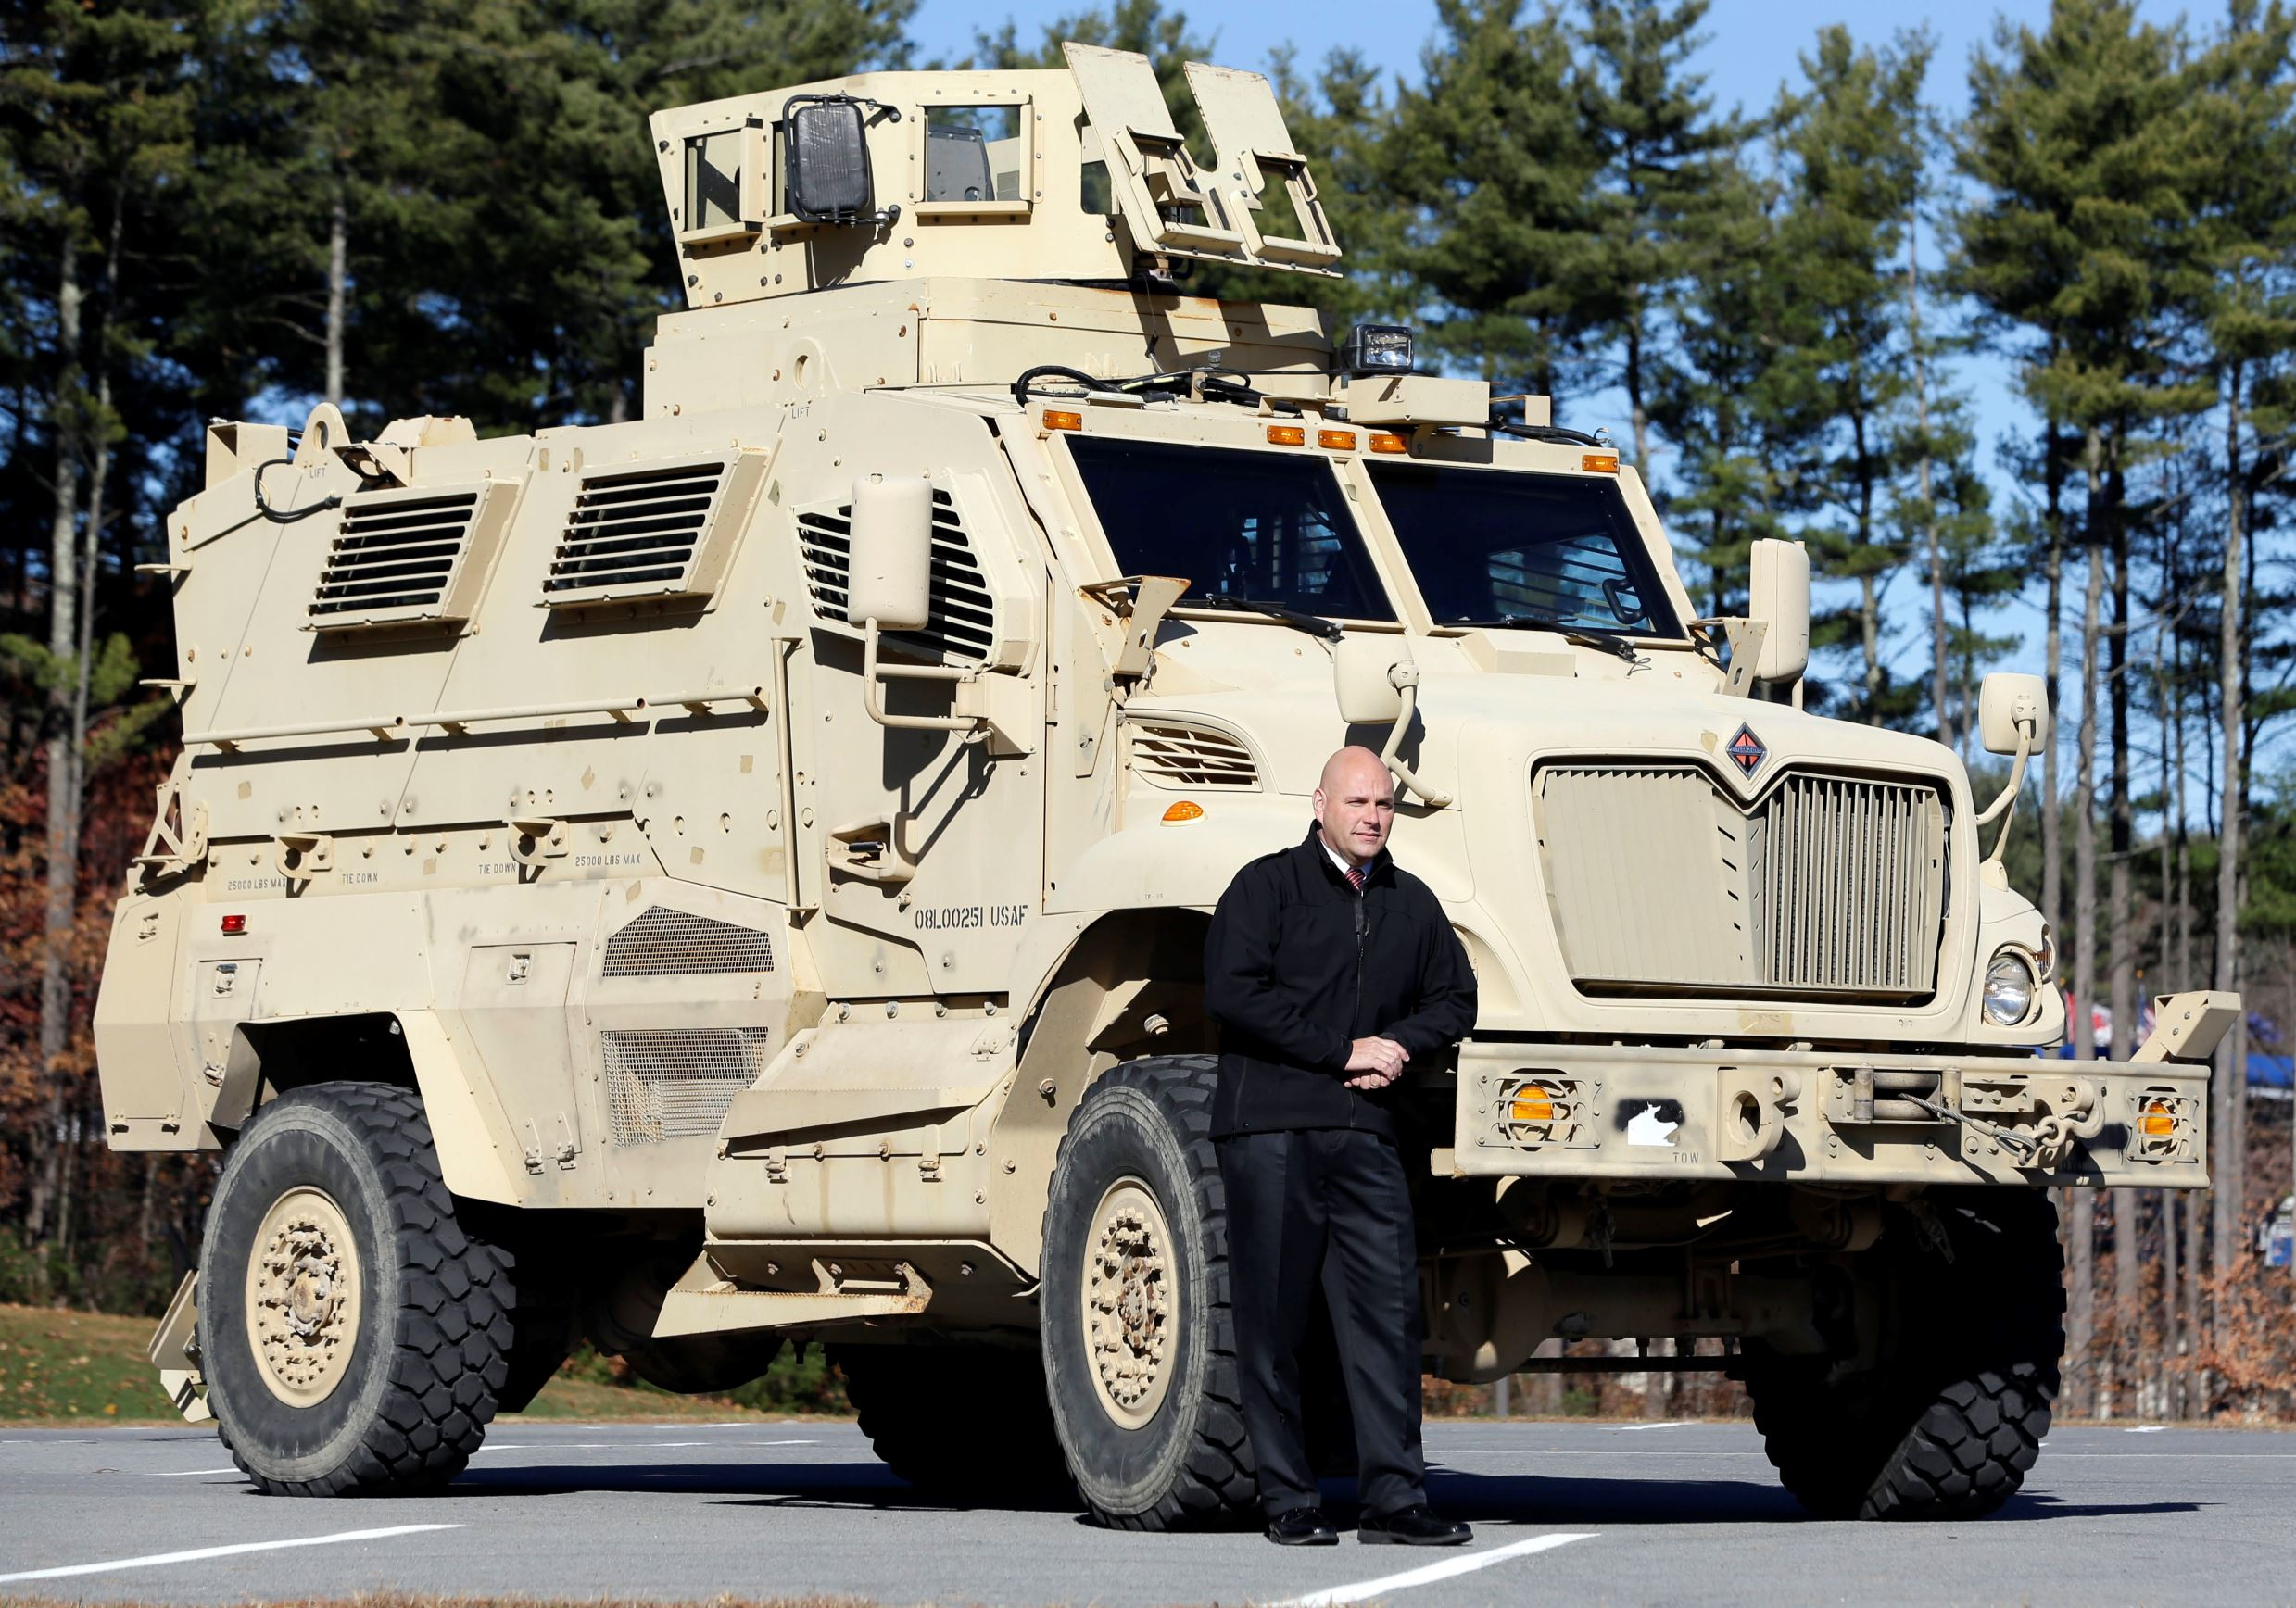 In this Wednesday, Nov. 13, 2013 photo, Warren County Undersheriff Shawn Lamouree poses in front the department's mine resistant ambush protected vehicle, or MRAP, in Queensbury, N.Y.